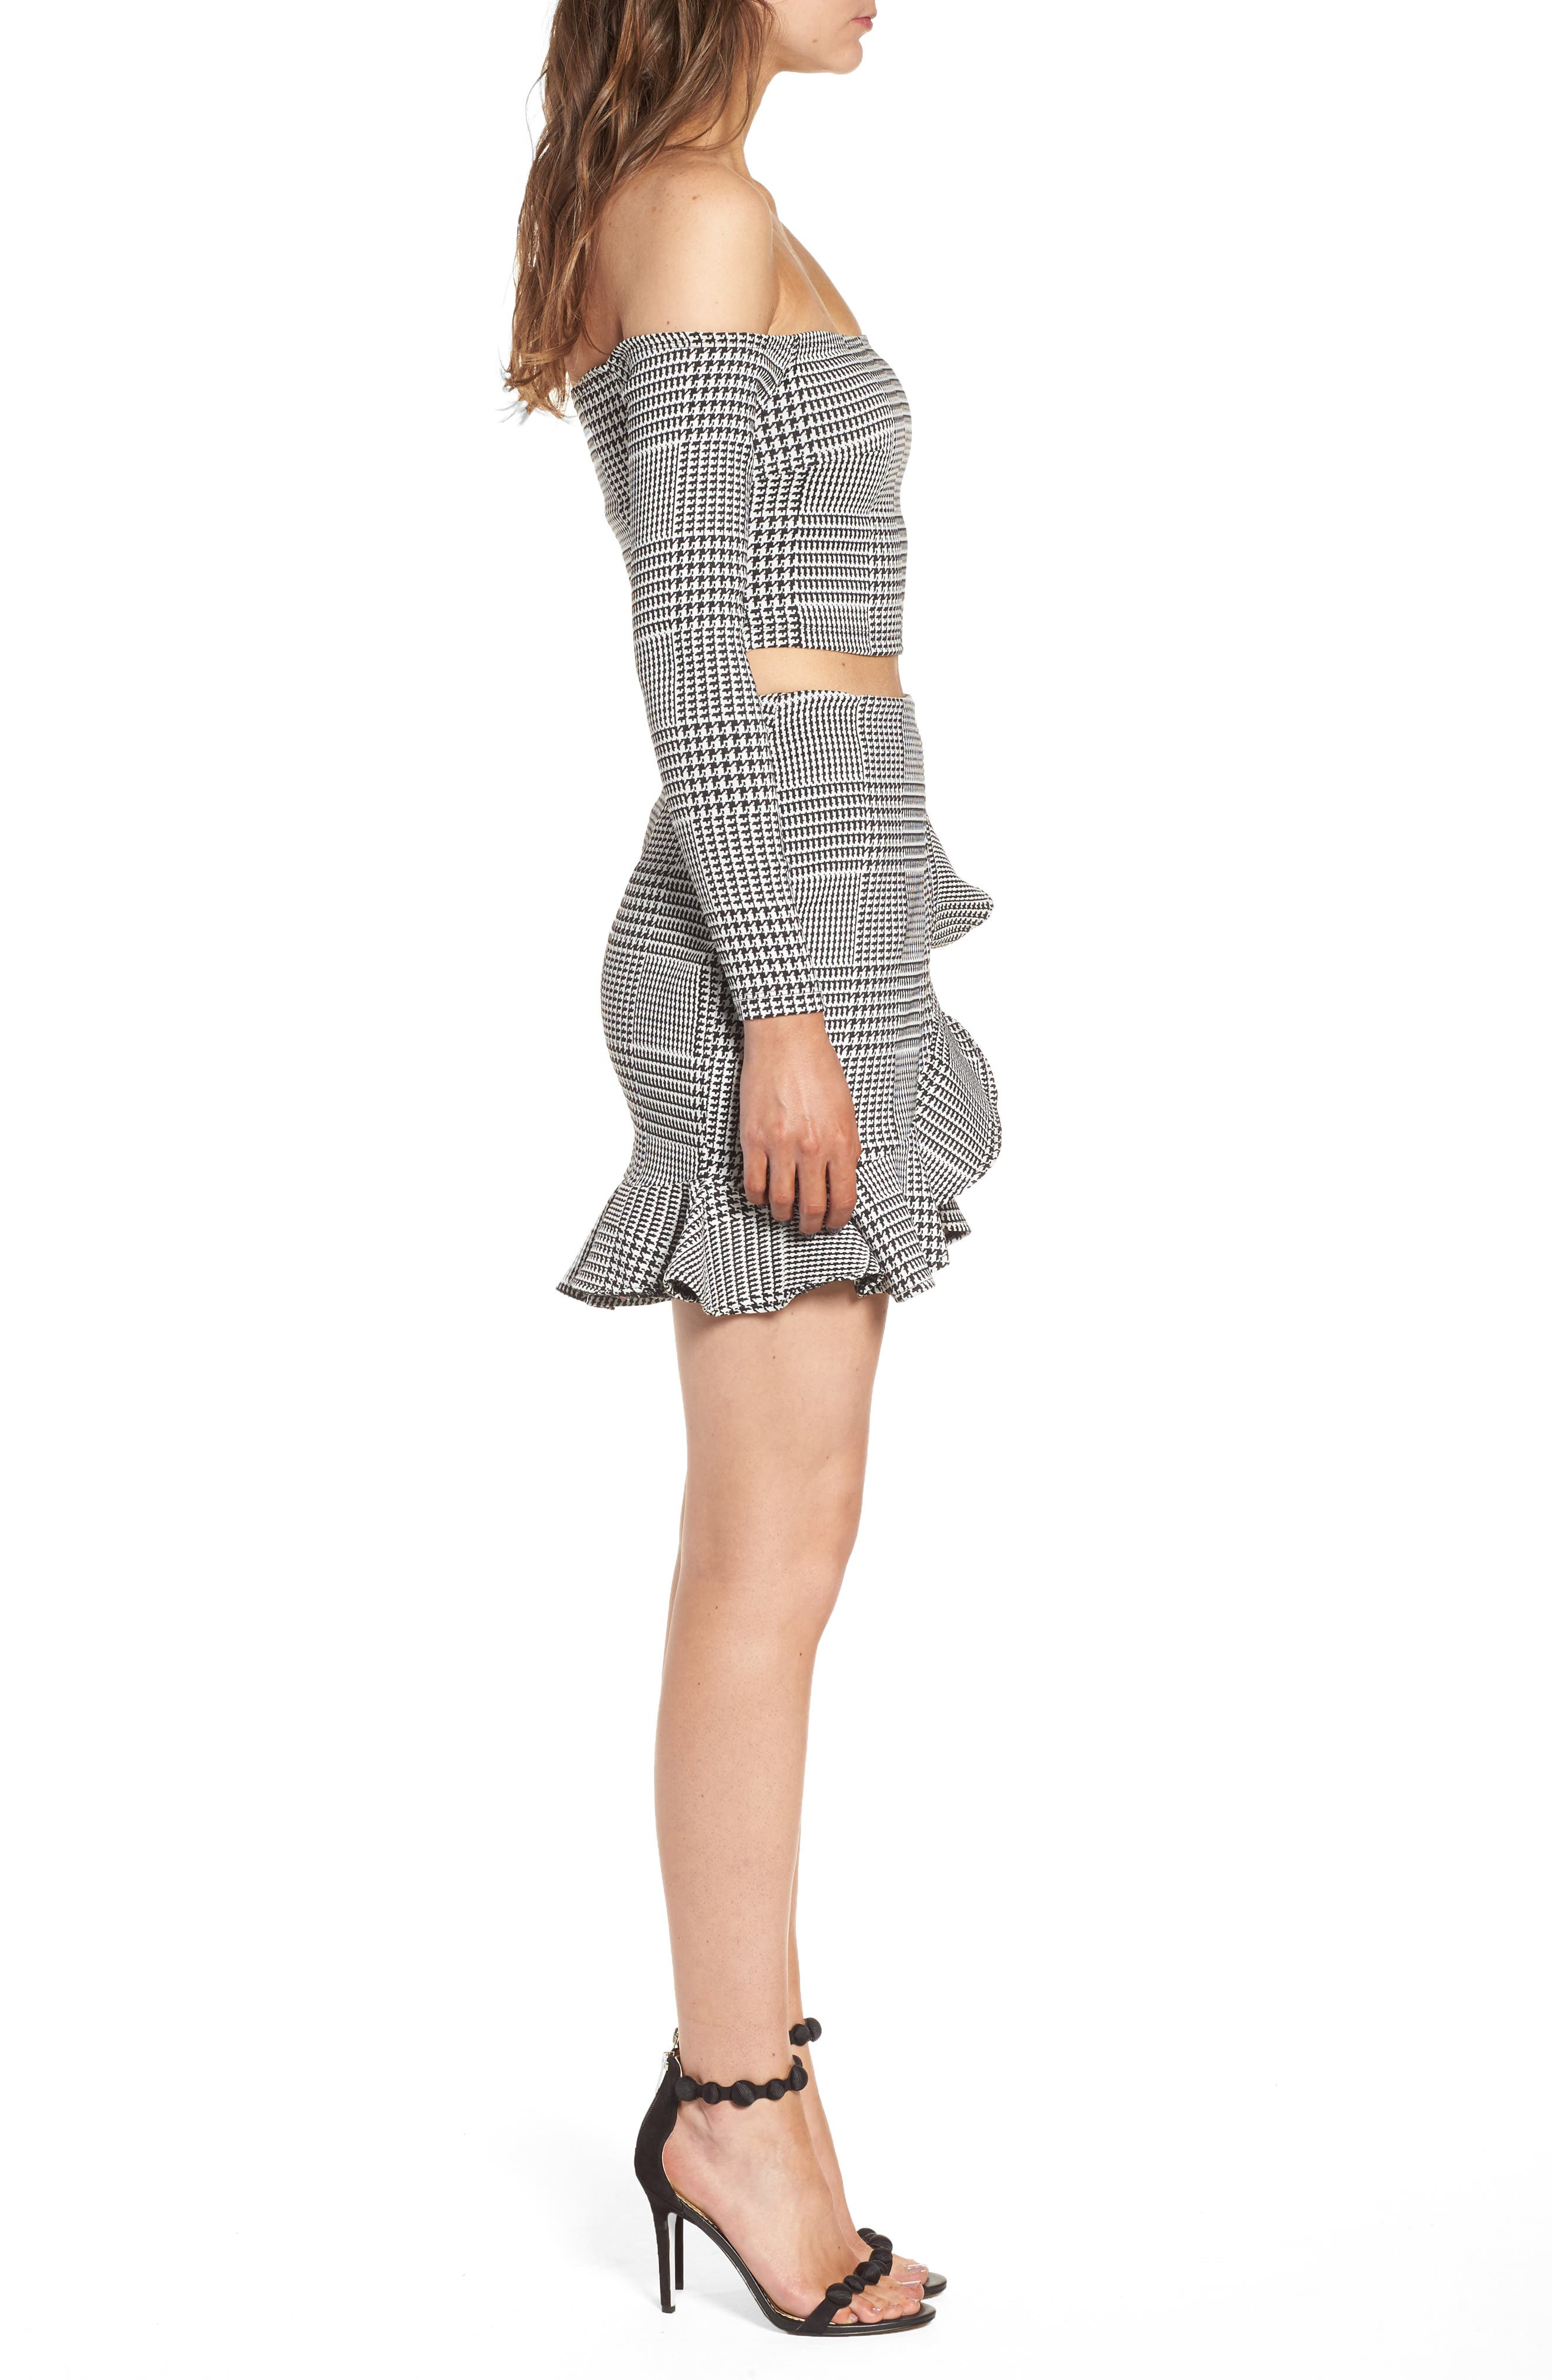 Affection Ruffle Houndstooth Skirt,                             Alternate thumbnail 9, color,                             020